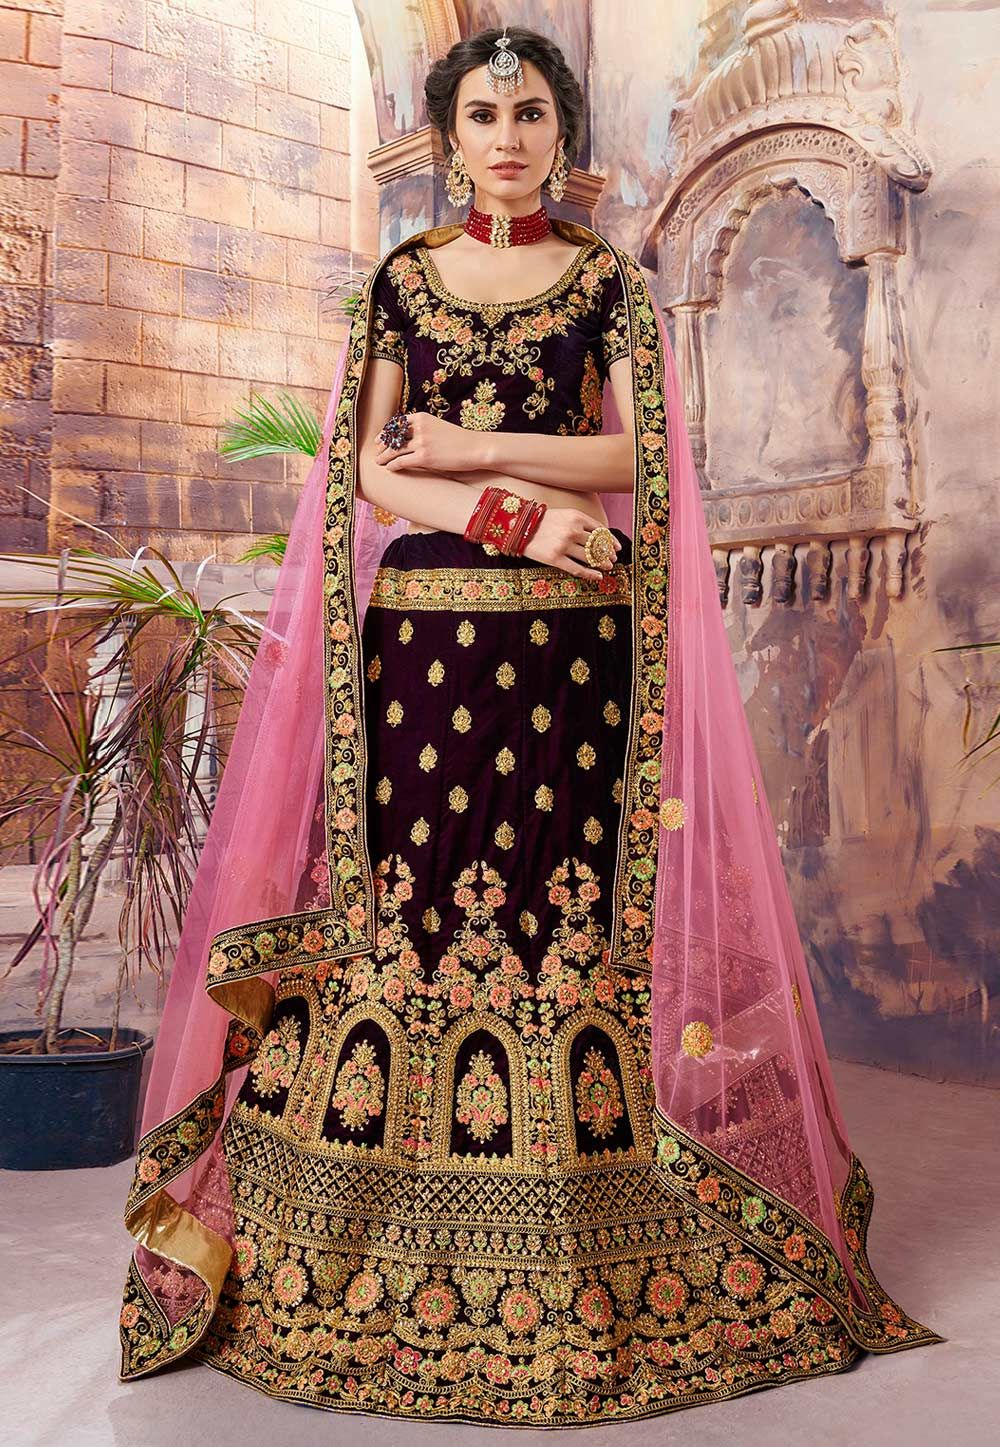 381ab9a1cd Buy Purple Velvet Circular Lehenga Choli 157214 online at best price from  vast collection of Lehenga Choli and Chaniya Choli at Indianclothstore.com.